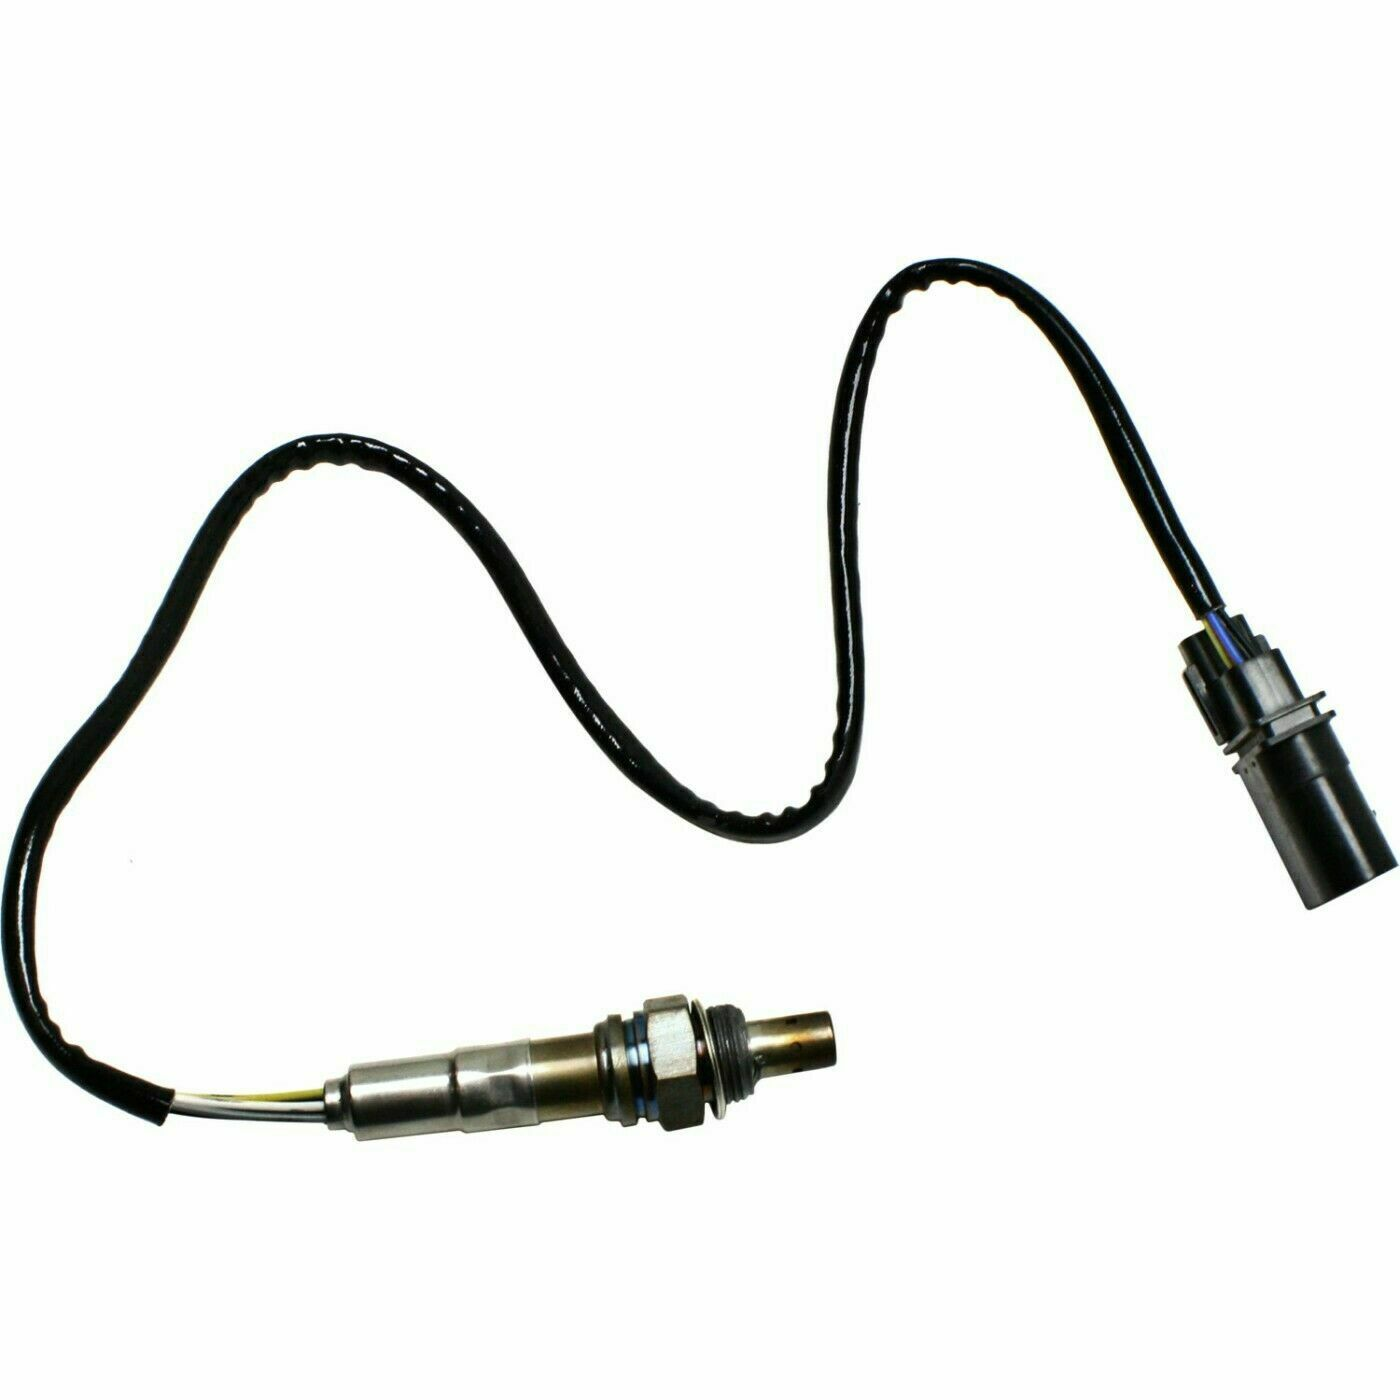 Upstream Oxygen Sensor For 2010-2013 Kia Forte 2.4L,2005